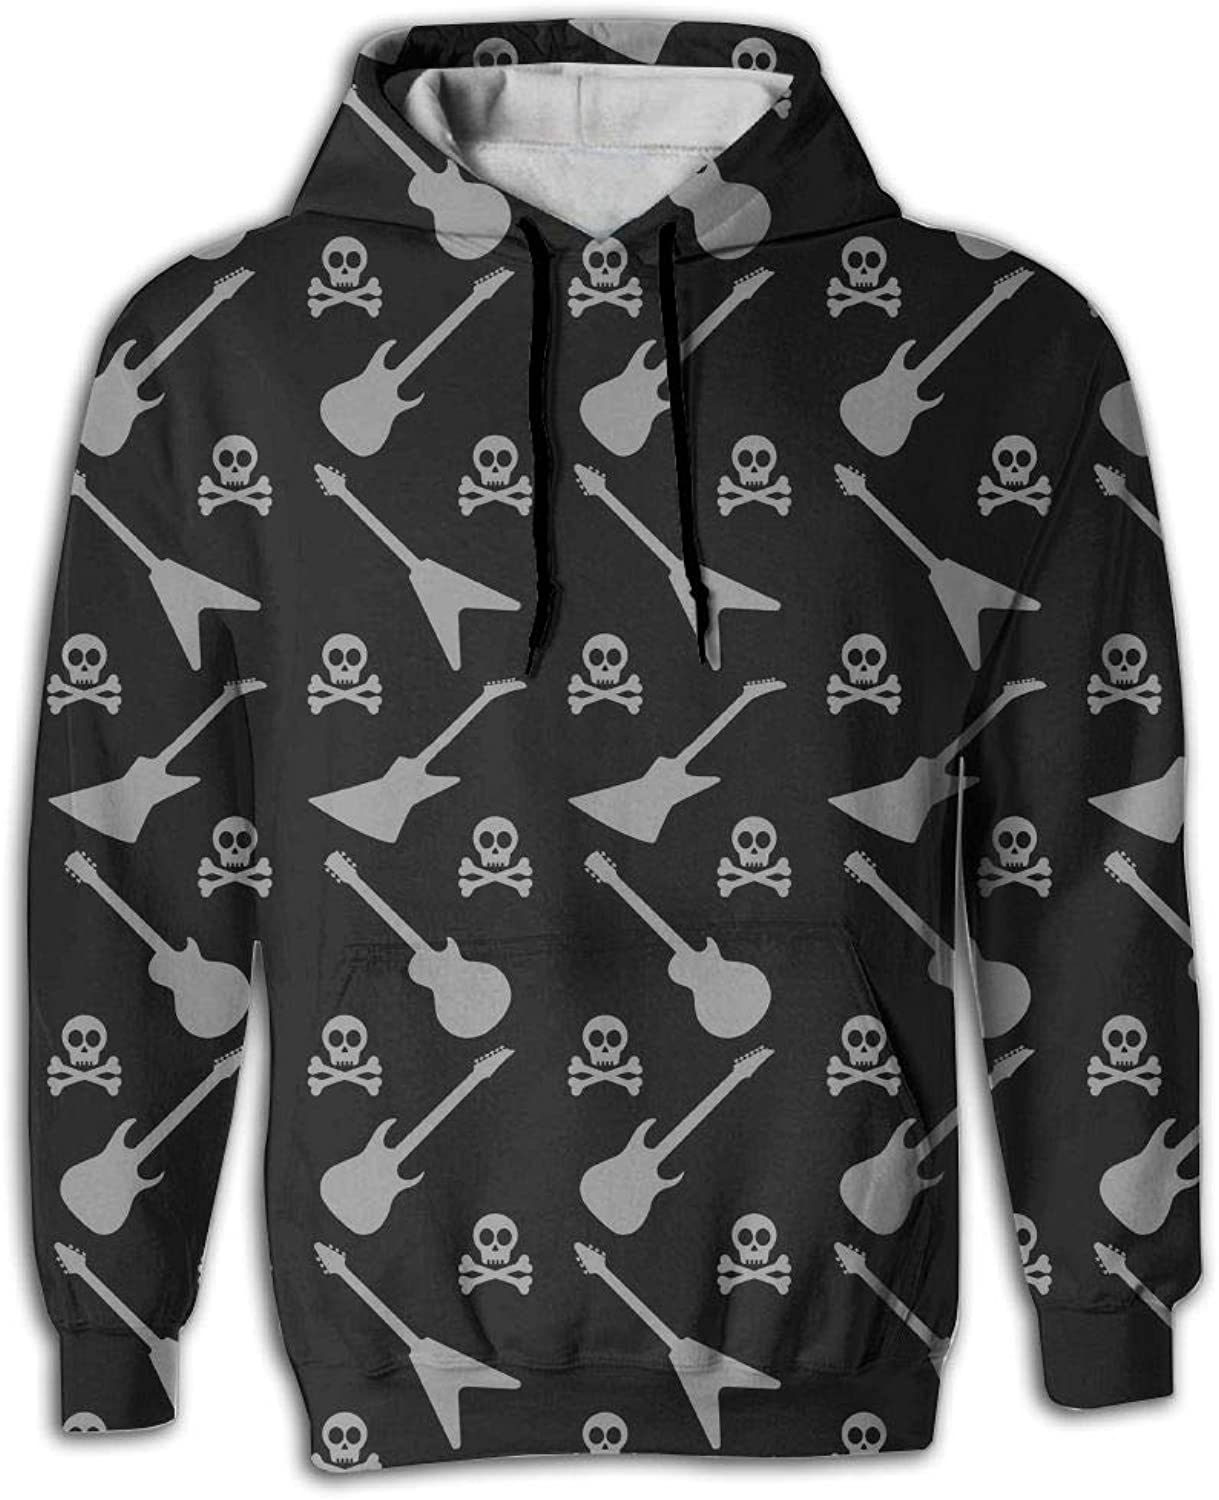 Earl Big Pockets Design Pop Skull with Rock Guitar Sports Hoodies